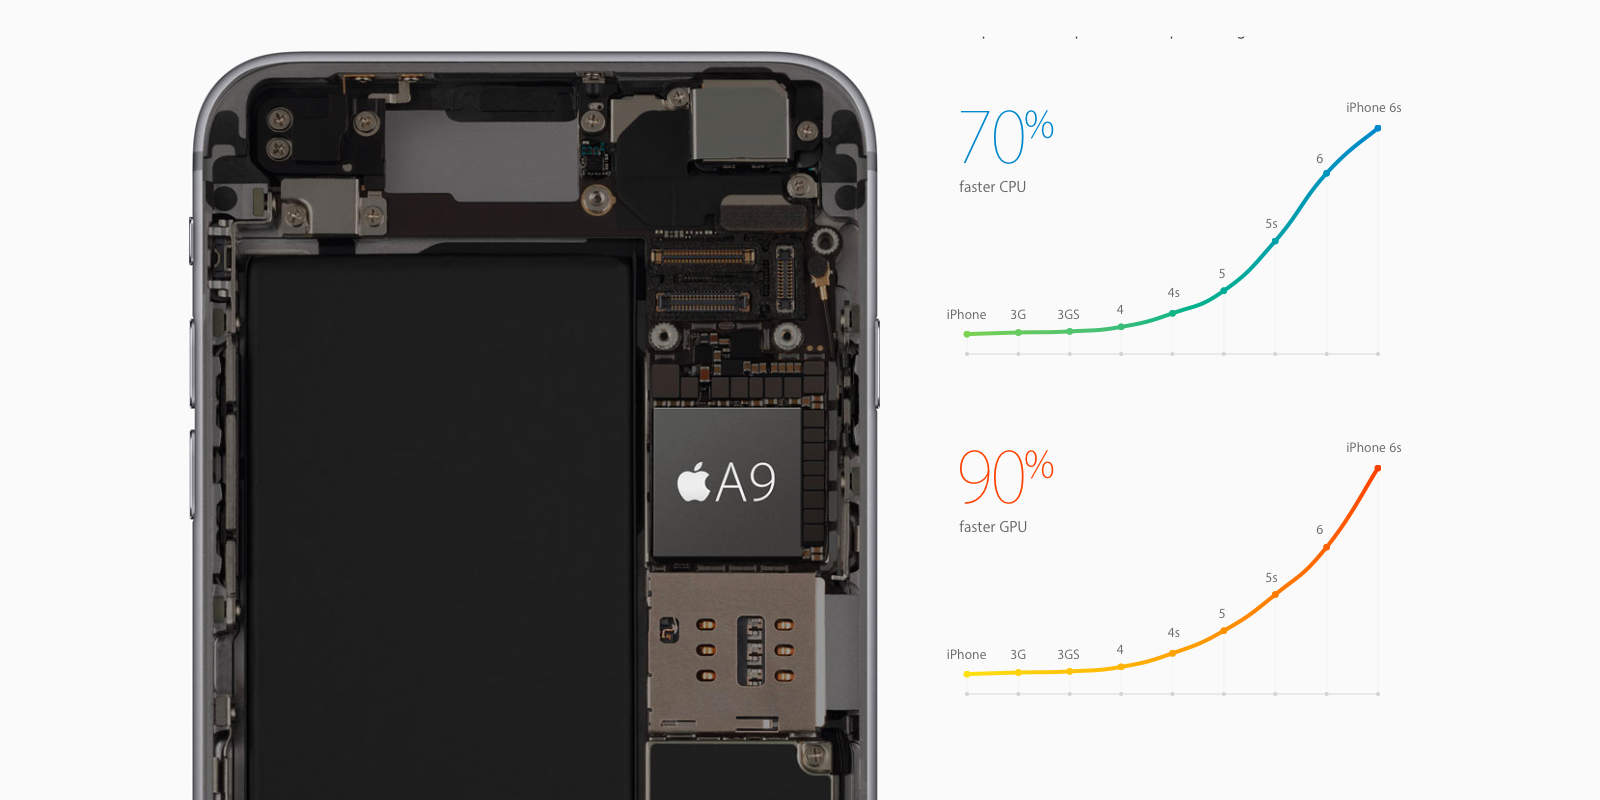 The A9X chip puts iPhone 6s graphics to shame.